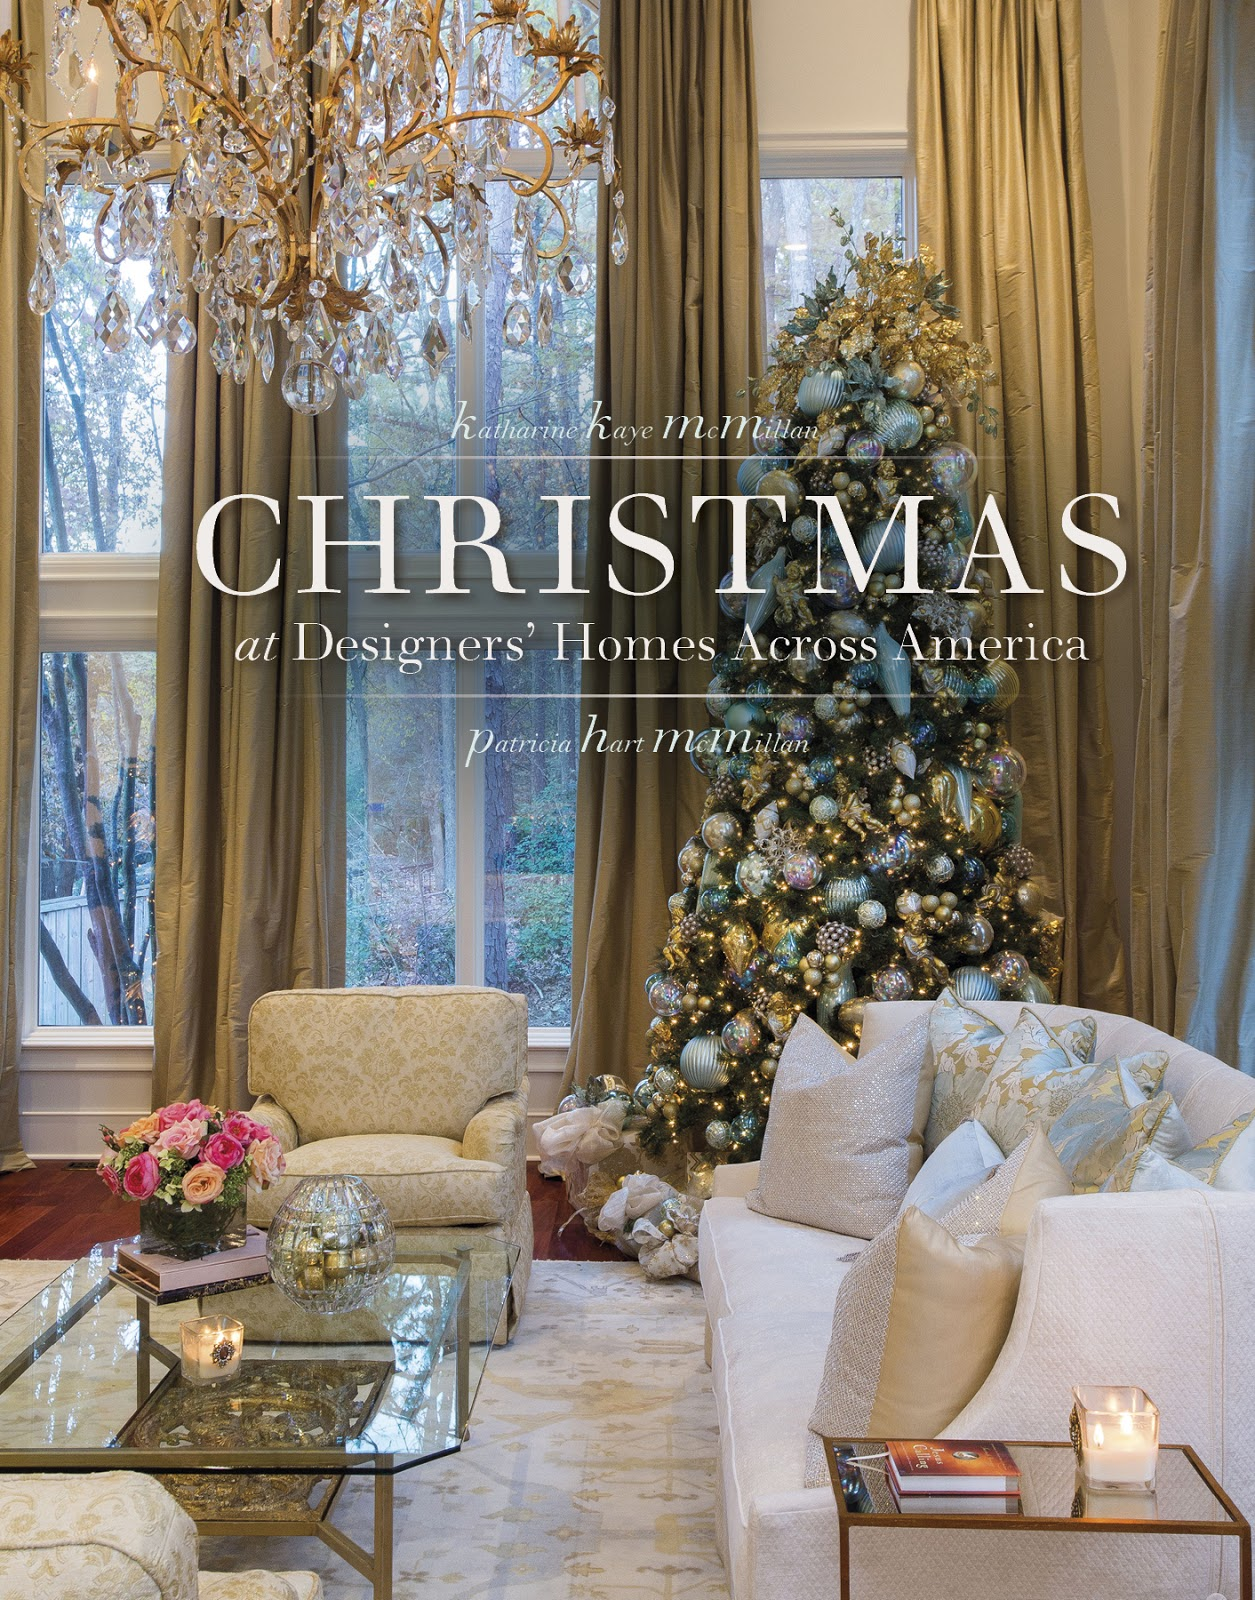 It Features Almost 400 Color Images Of Beautiful Holiday Inspirations  Created By Leading Designers In Their Own Homes. A Few Of My Favorites Are  Belowu2026